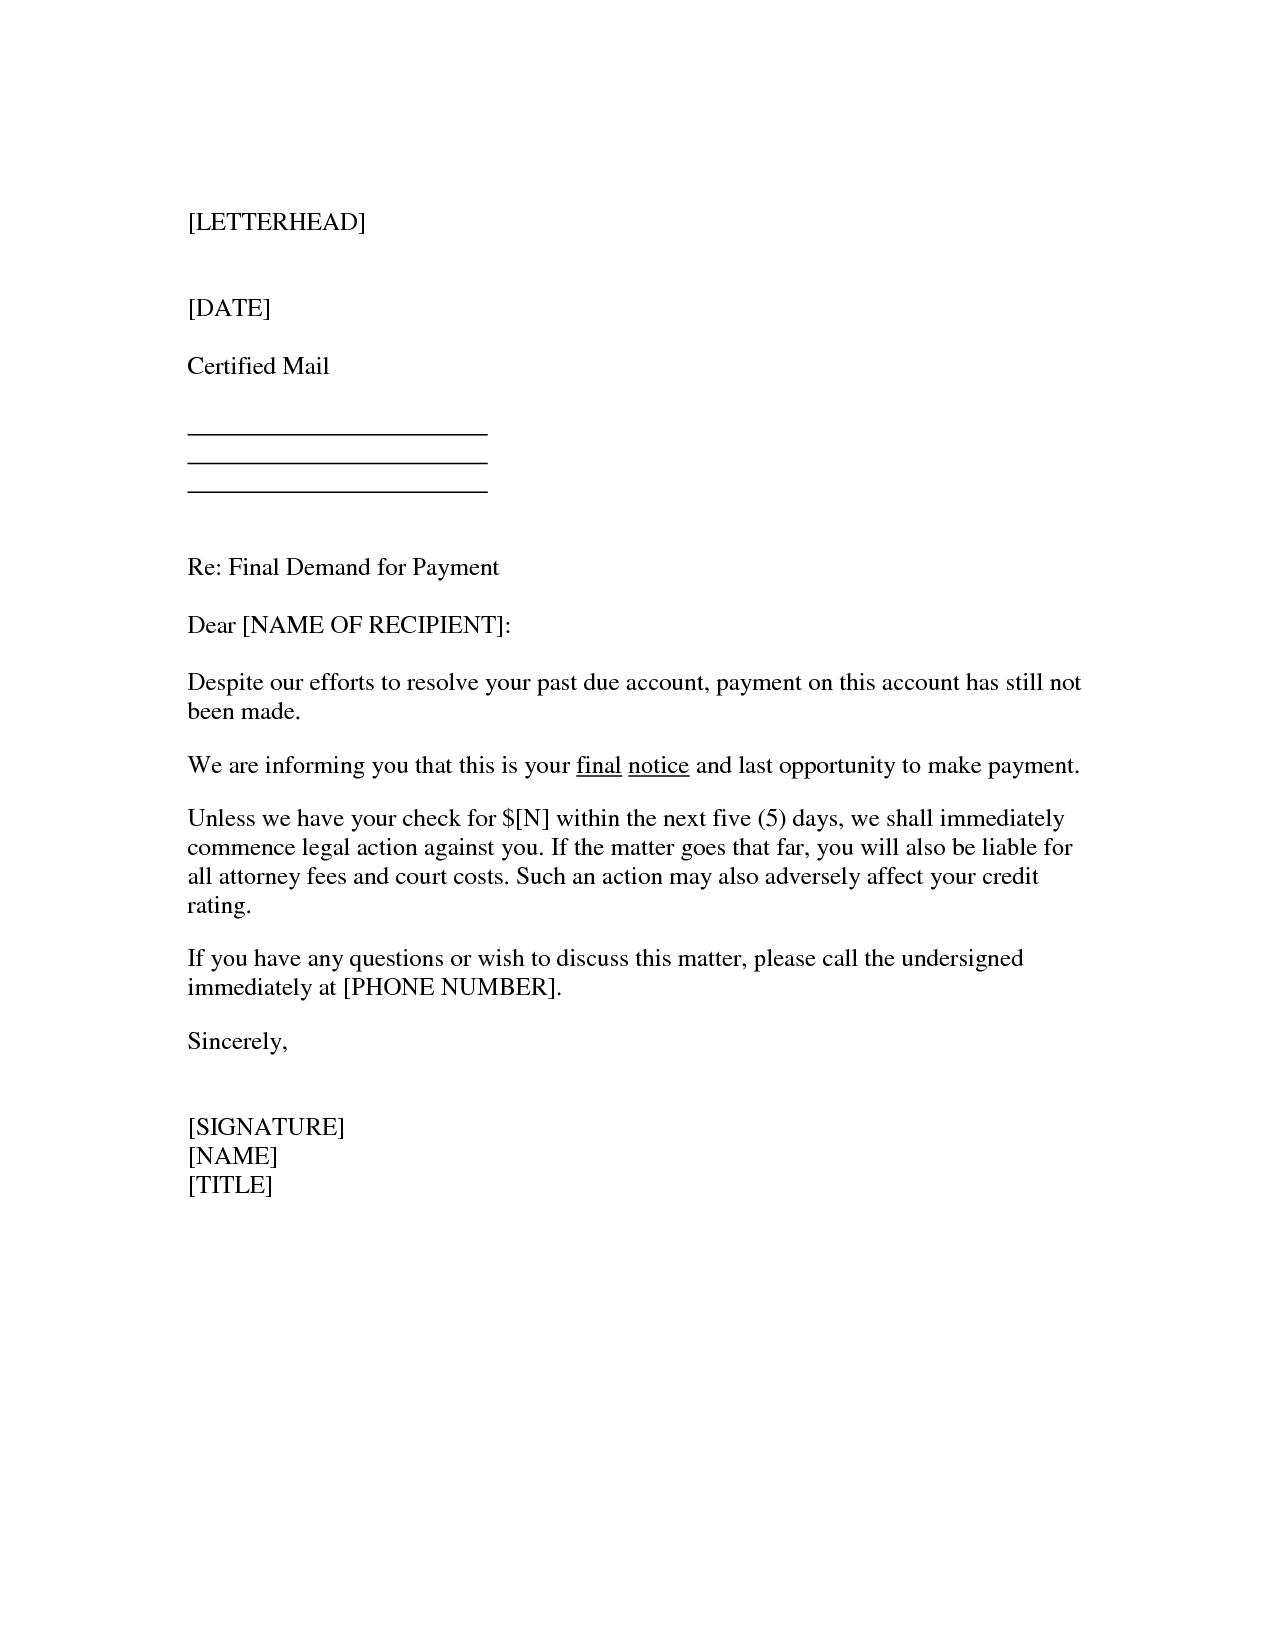 Final Demand for Payment Letter Template - How to Write A Demand for Payment Letter Letter format